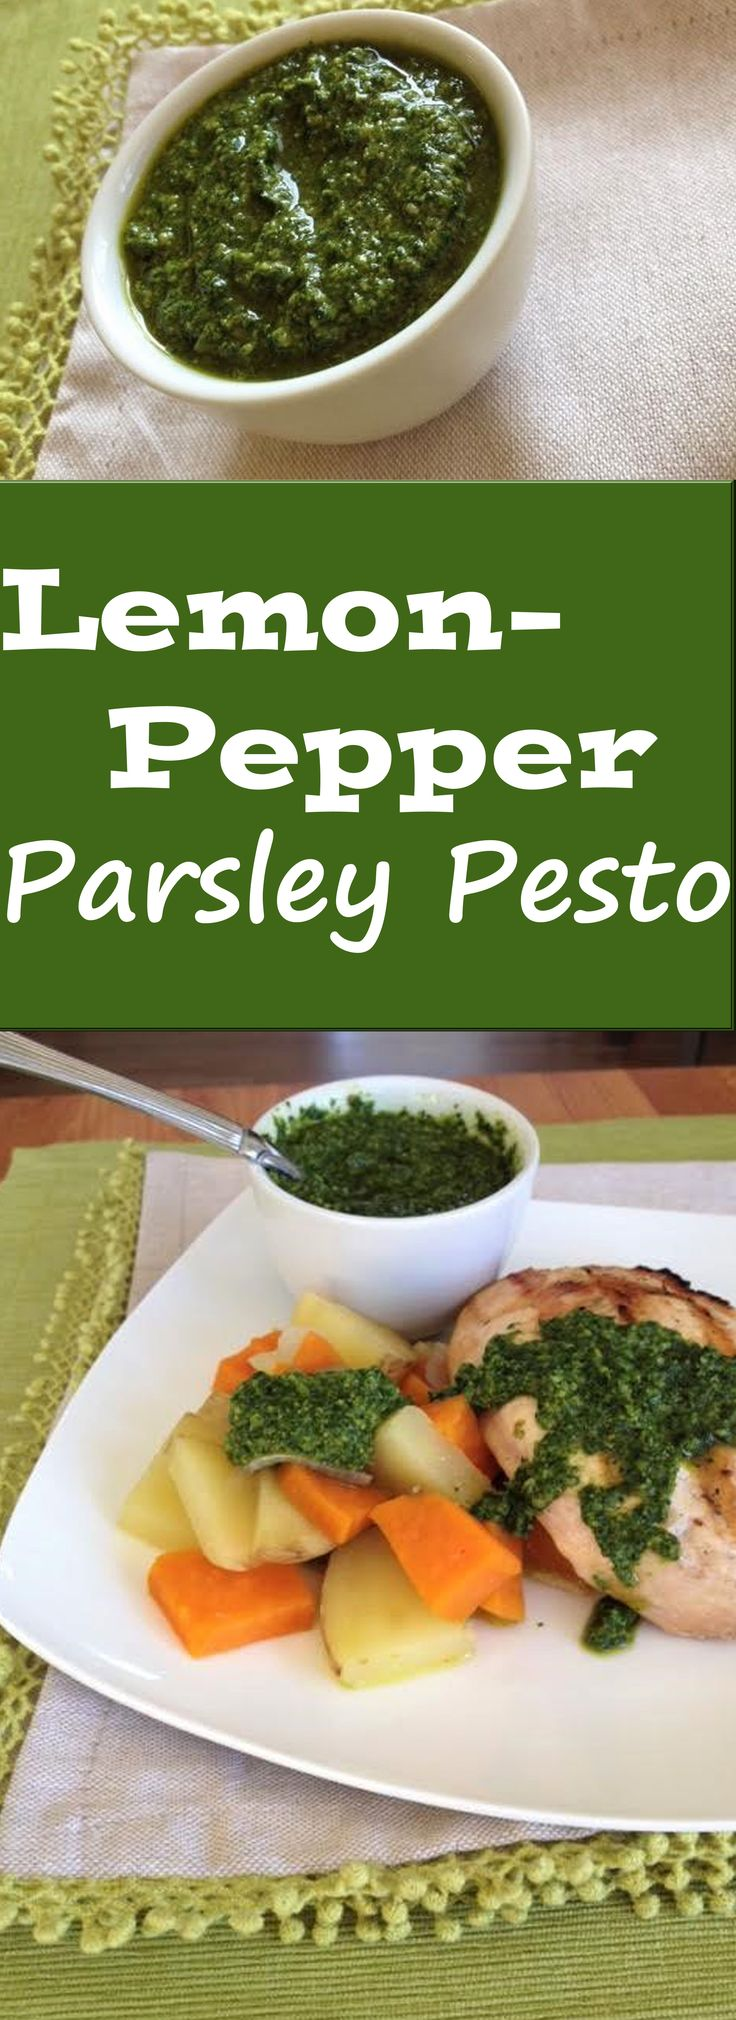 Ever have extra parsley laying around? Turn it into Lemon-Pepper Parsley Pesto to avoid wasting it! Lemon-Pepper Parsley pesto is as versatile as classic basil pesto and can be used with many foods and recipes. It adds a super fresh flavor and the great thing is that it can be frozen for later use. With this recipe, you will never have to throw out extra parsley again!